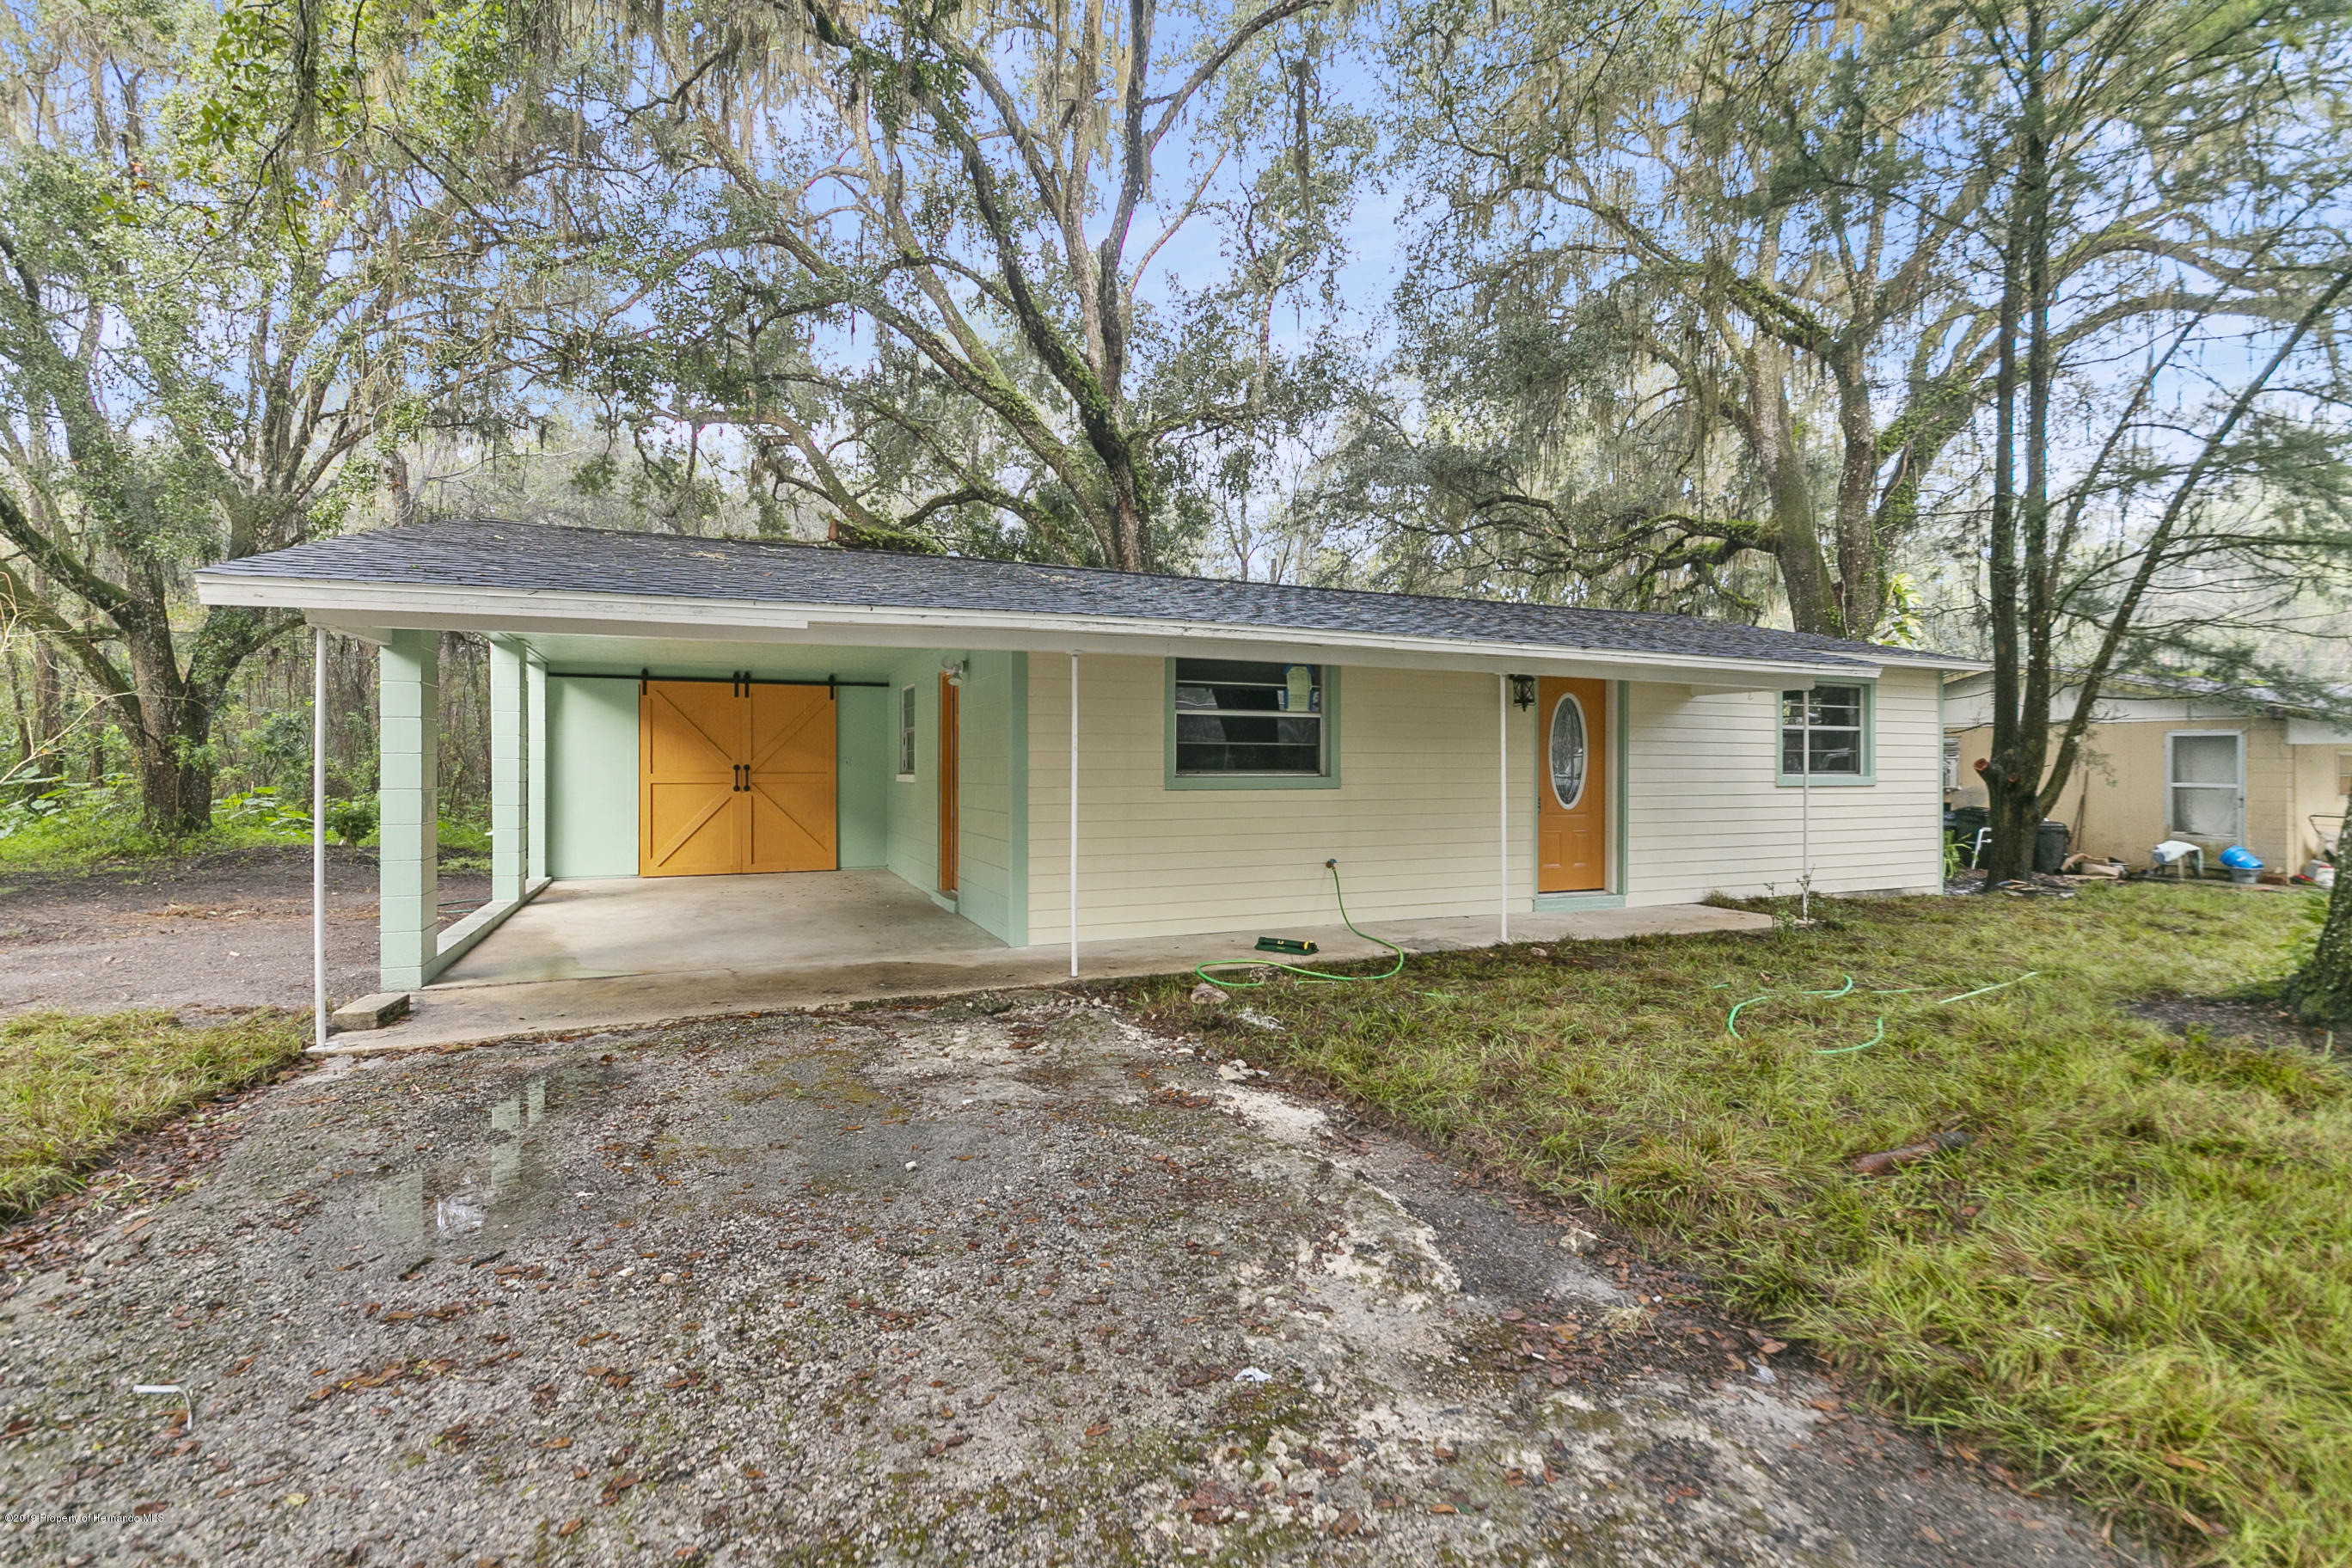 7181 Ursula Avenue, Brooksville, Florida 34601, 2 Bedrooms Bedrooms, ,1 BathroomBathrooms,Residential,For Sale,Ursula,2206098